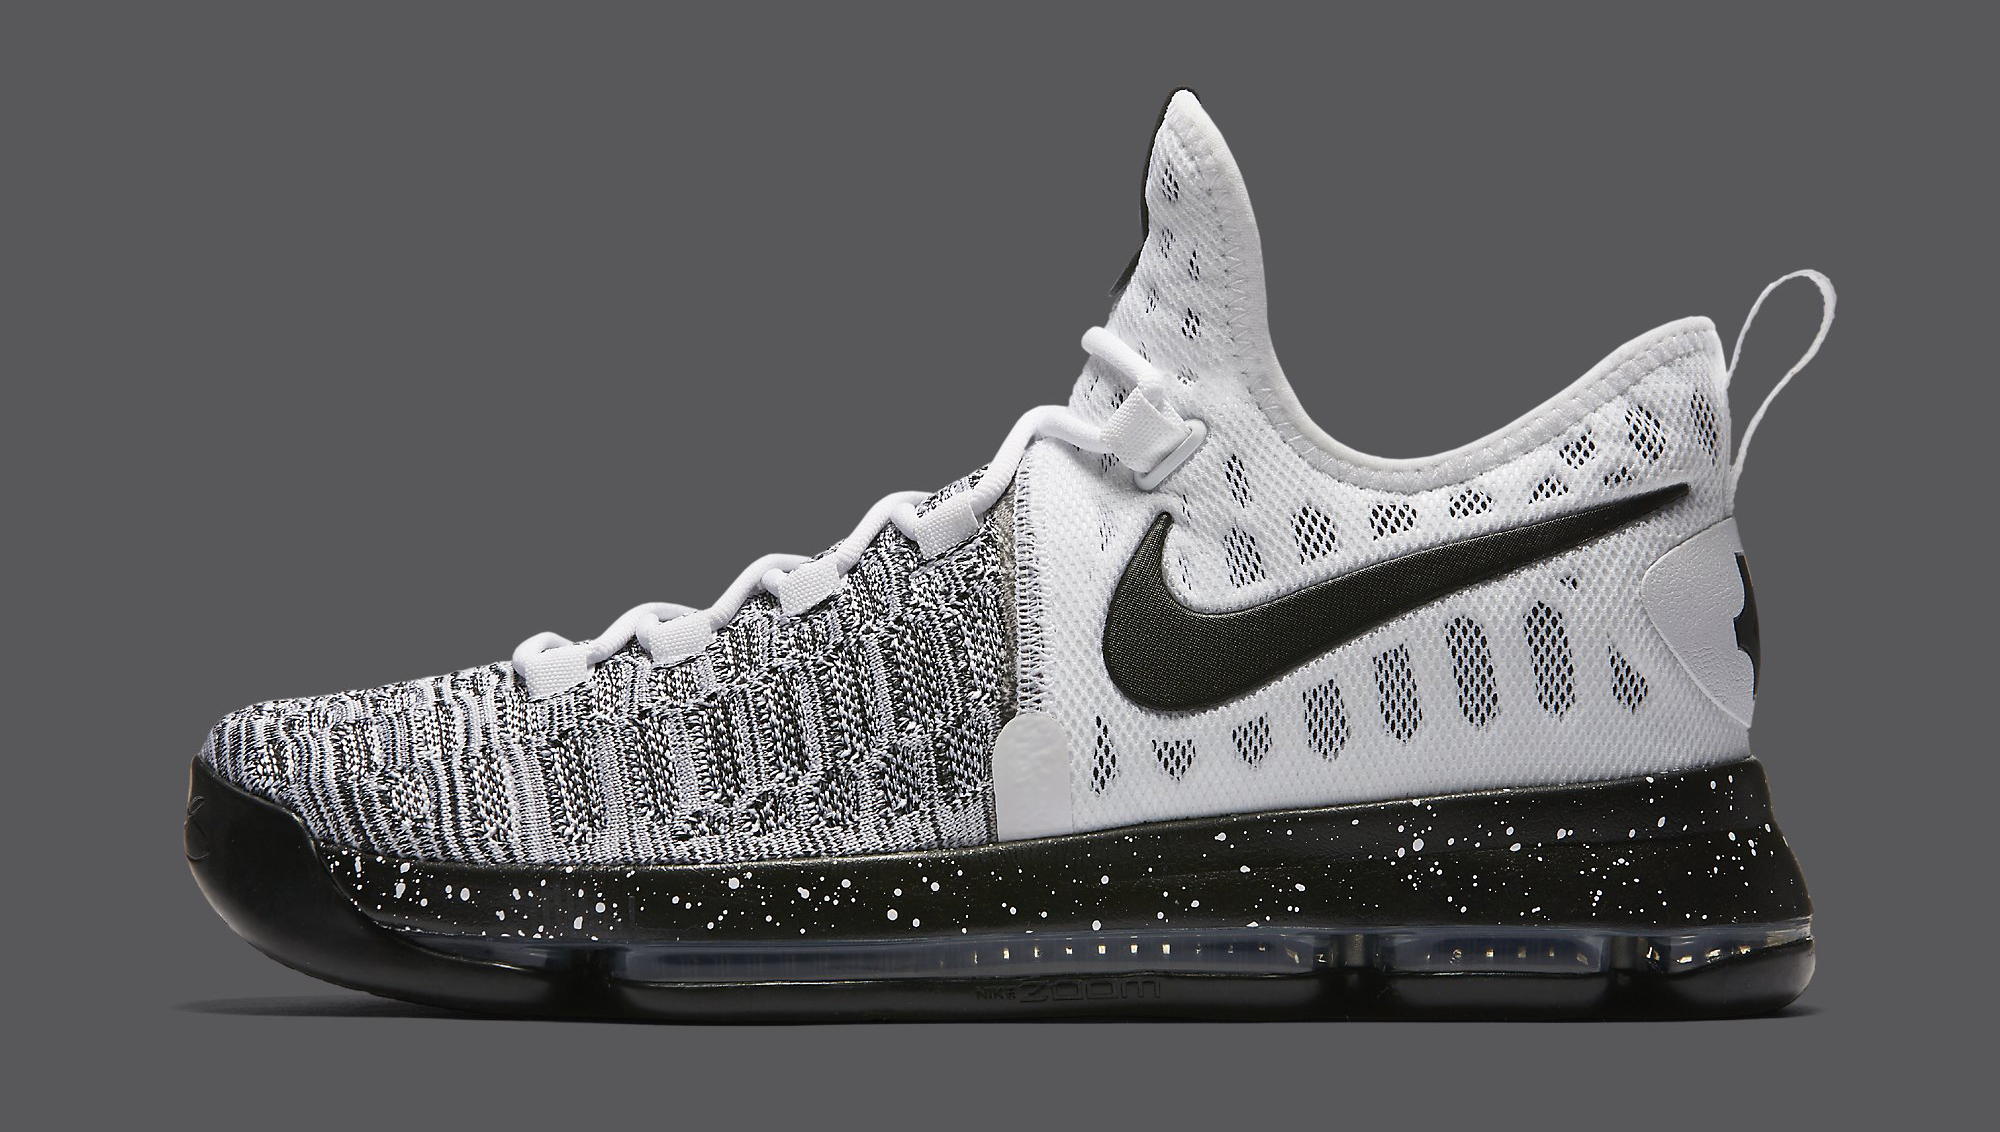 huge discount a315e e53ee Nike KD 9 White Black Oreo 843392-100 Profile